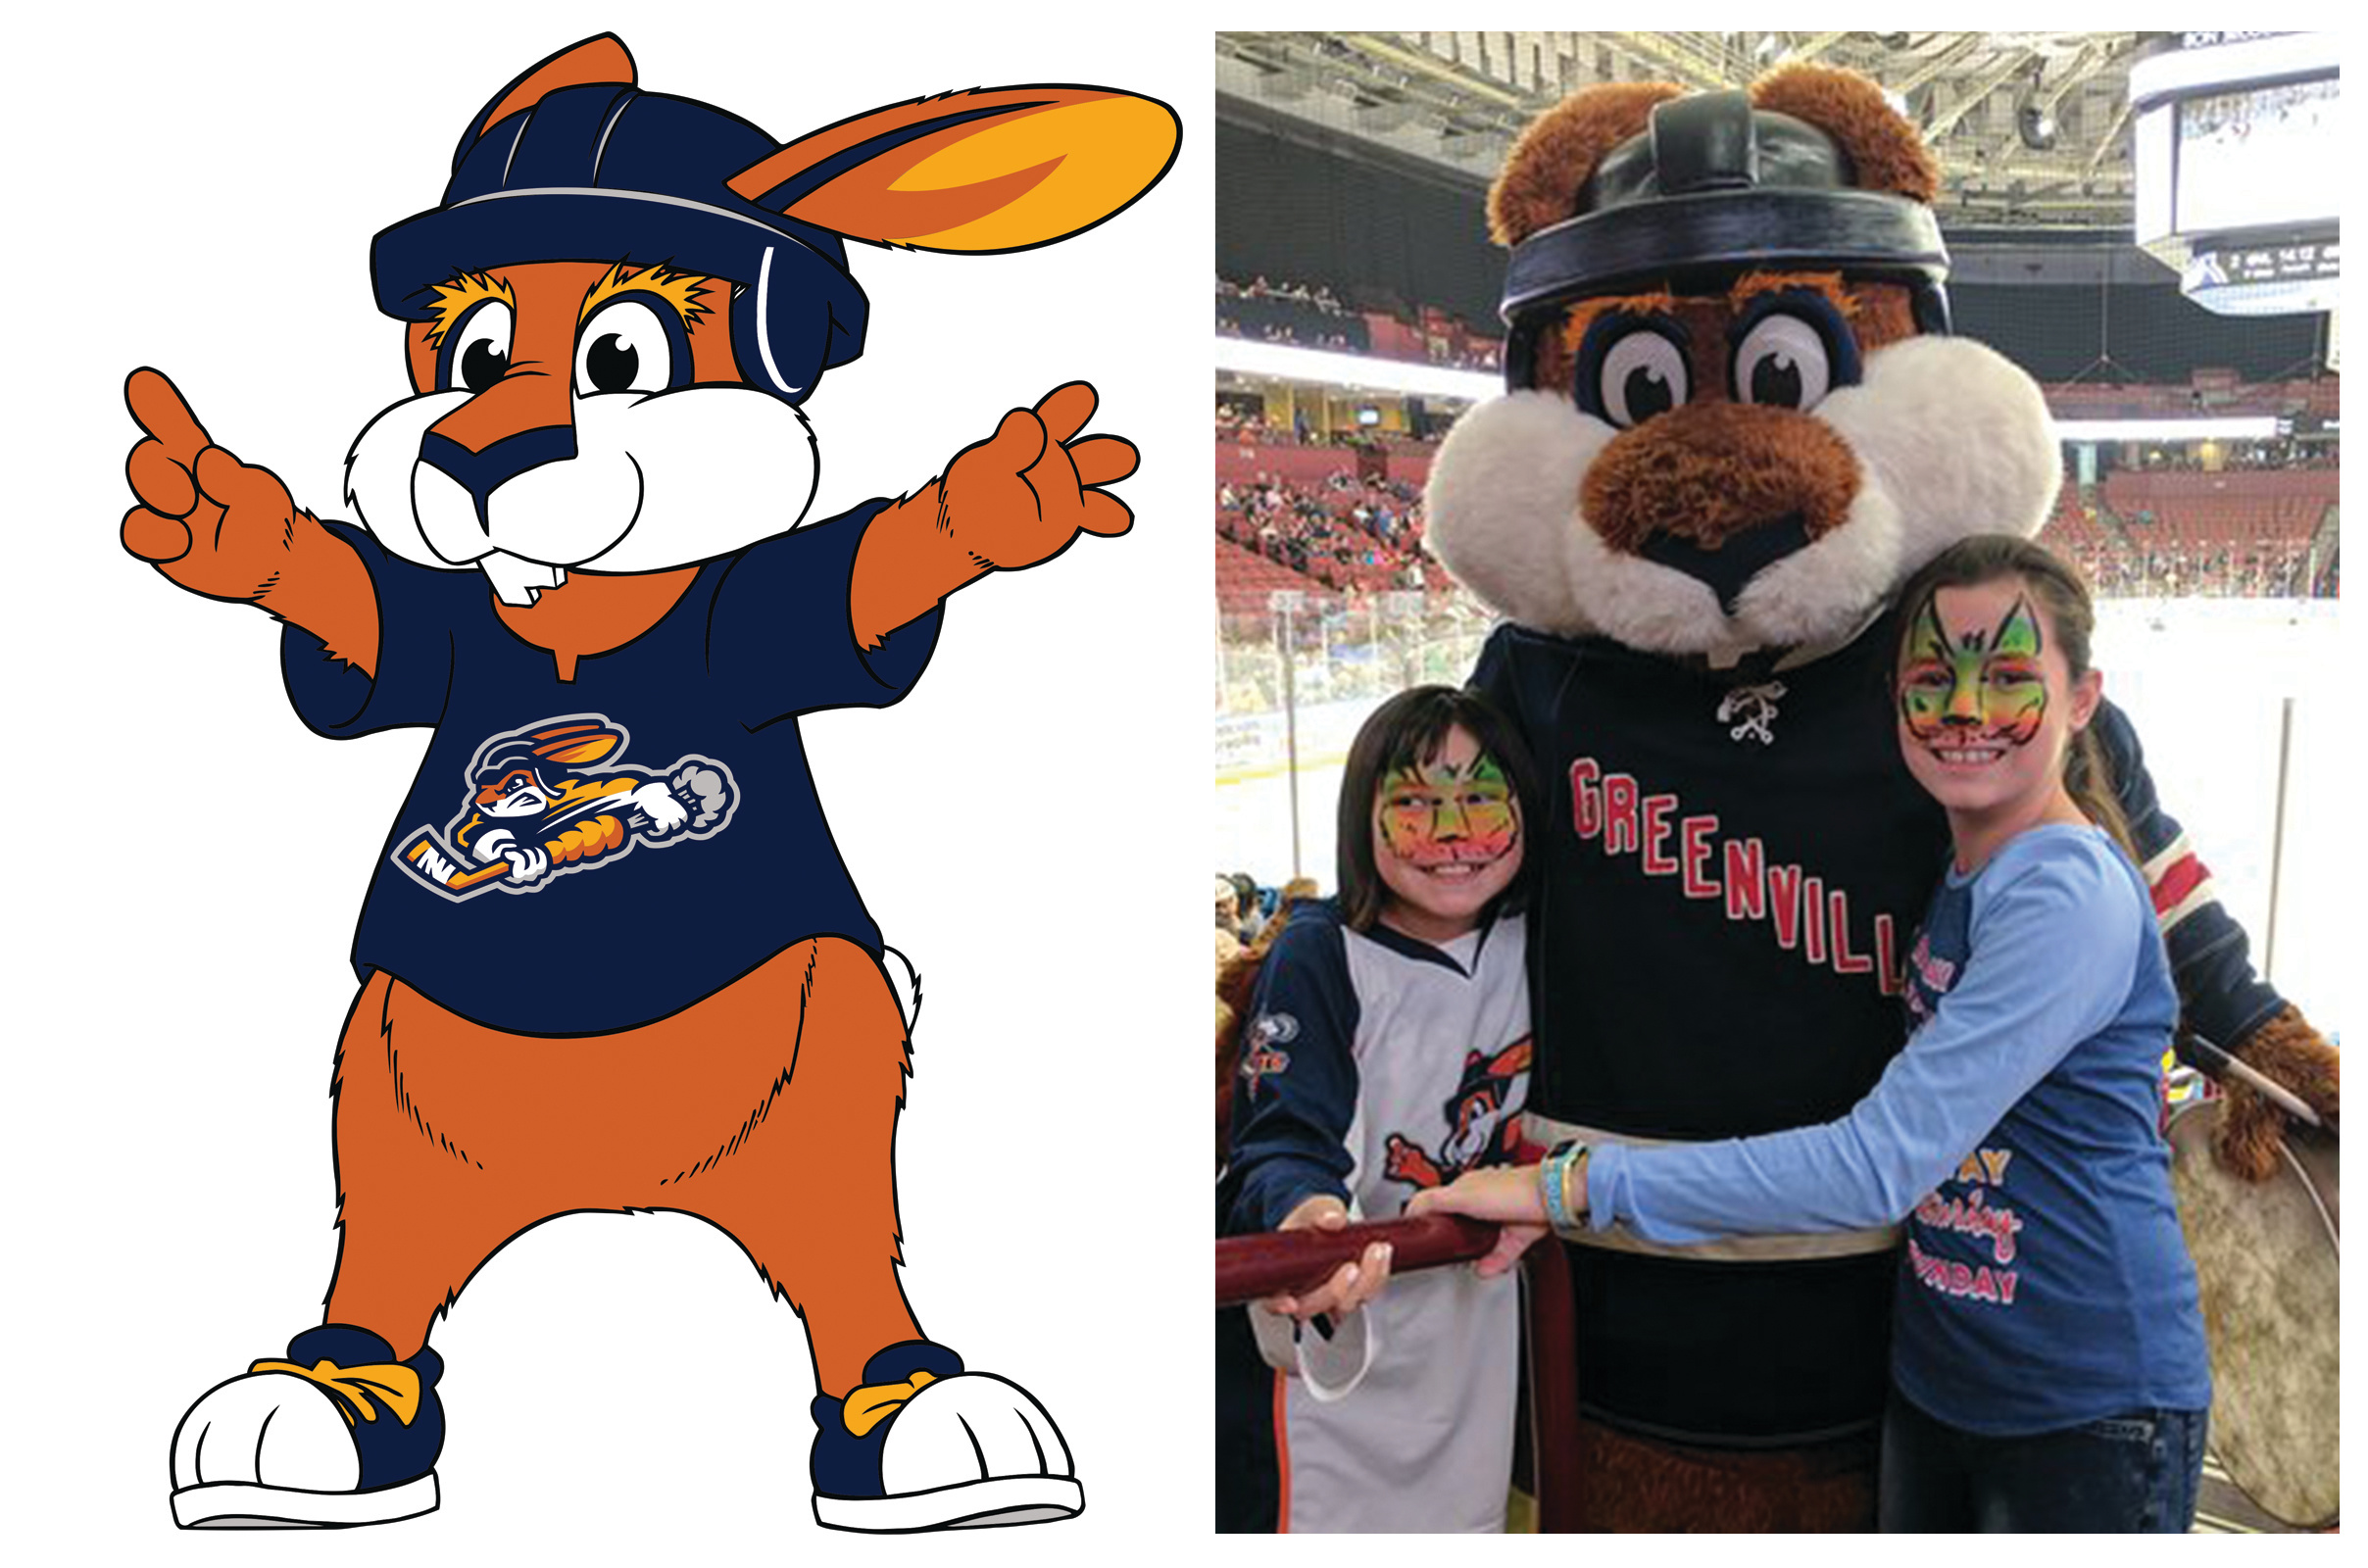 Swamp Rabbit - ECHL Greenville